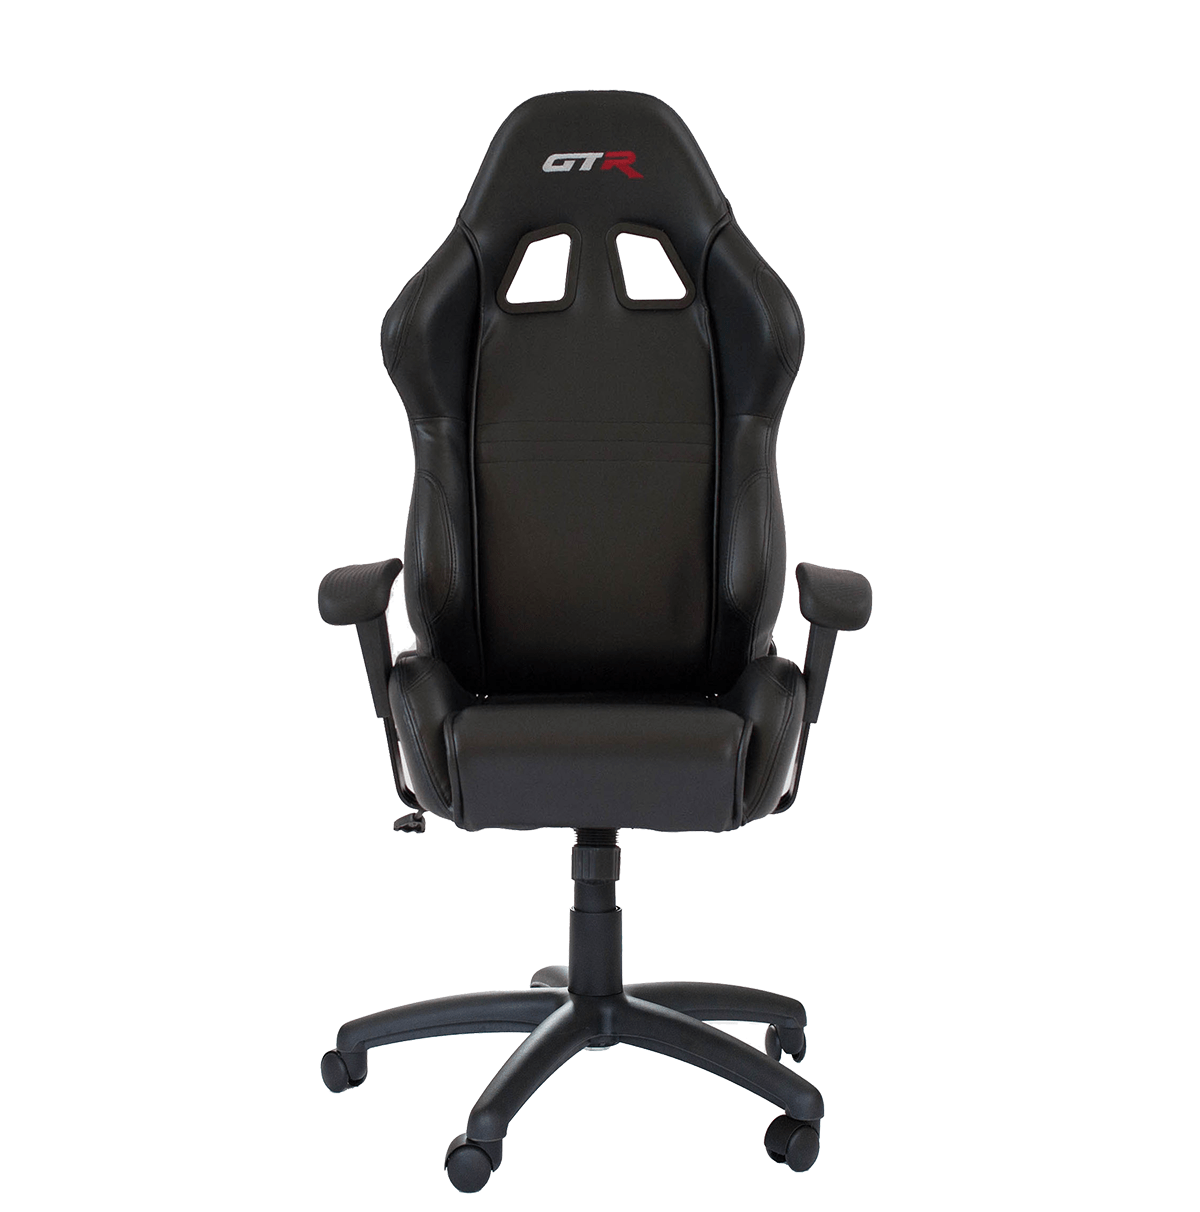 Large Size Big and Tall Computer Chair Gaming Chair High